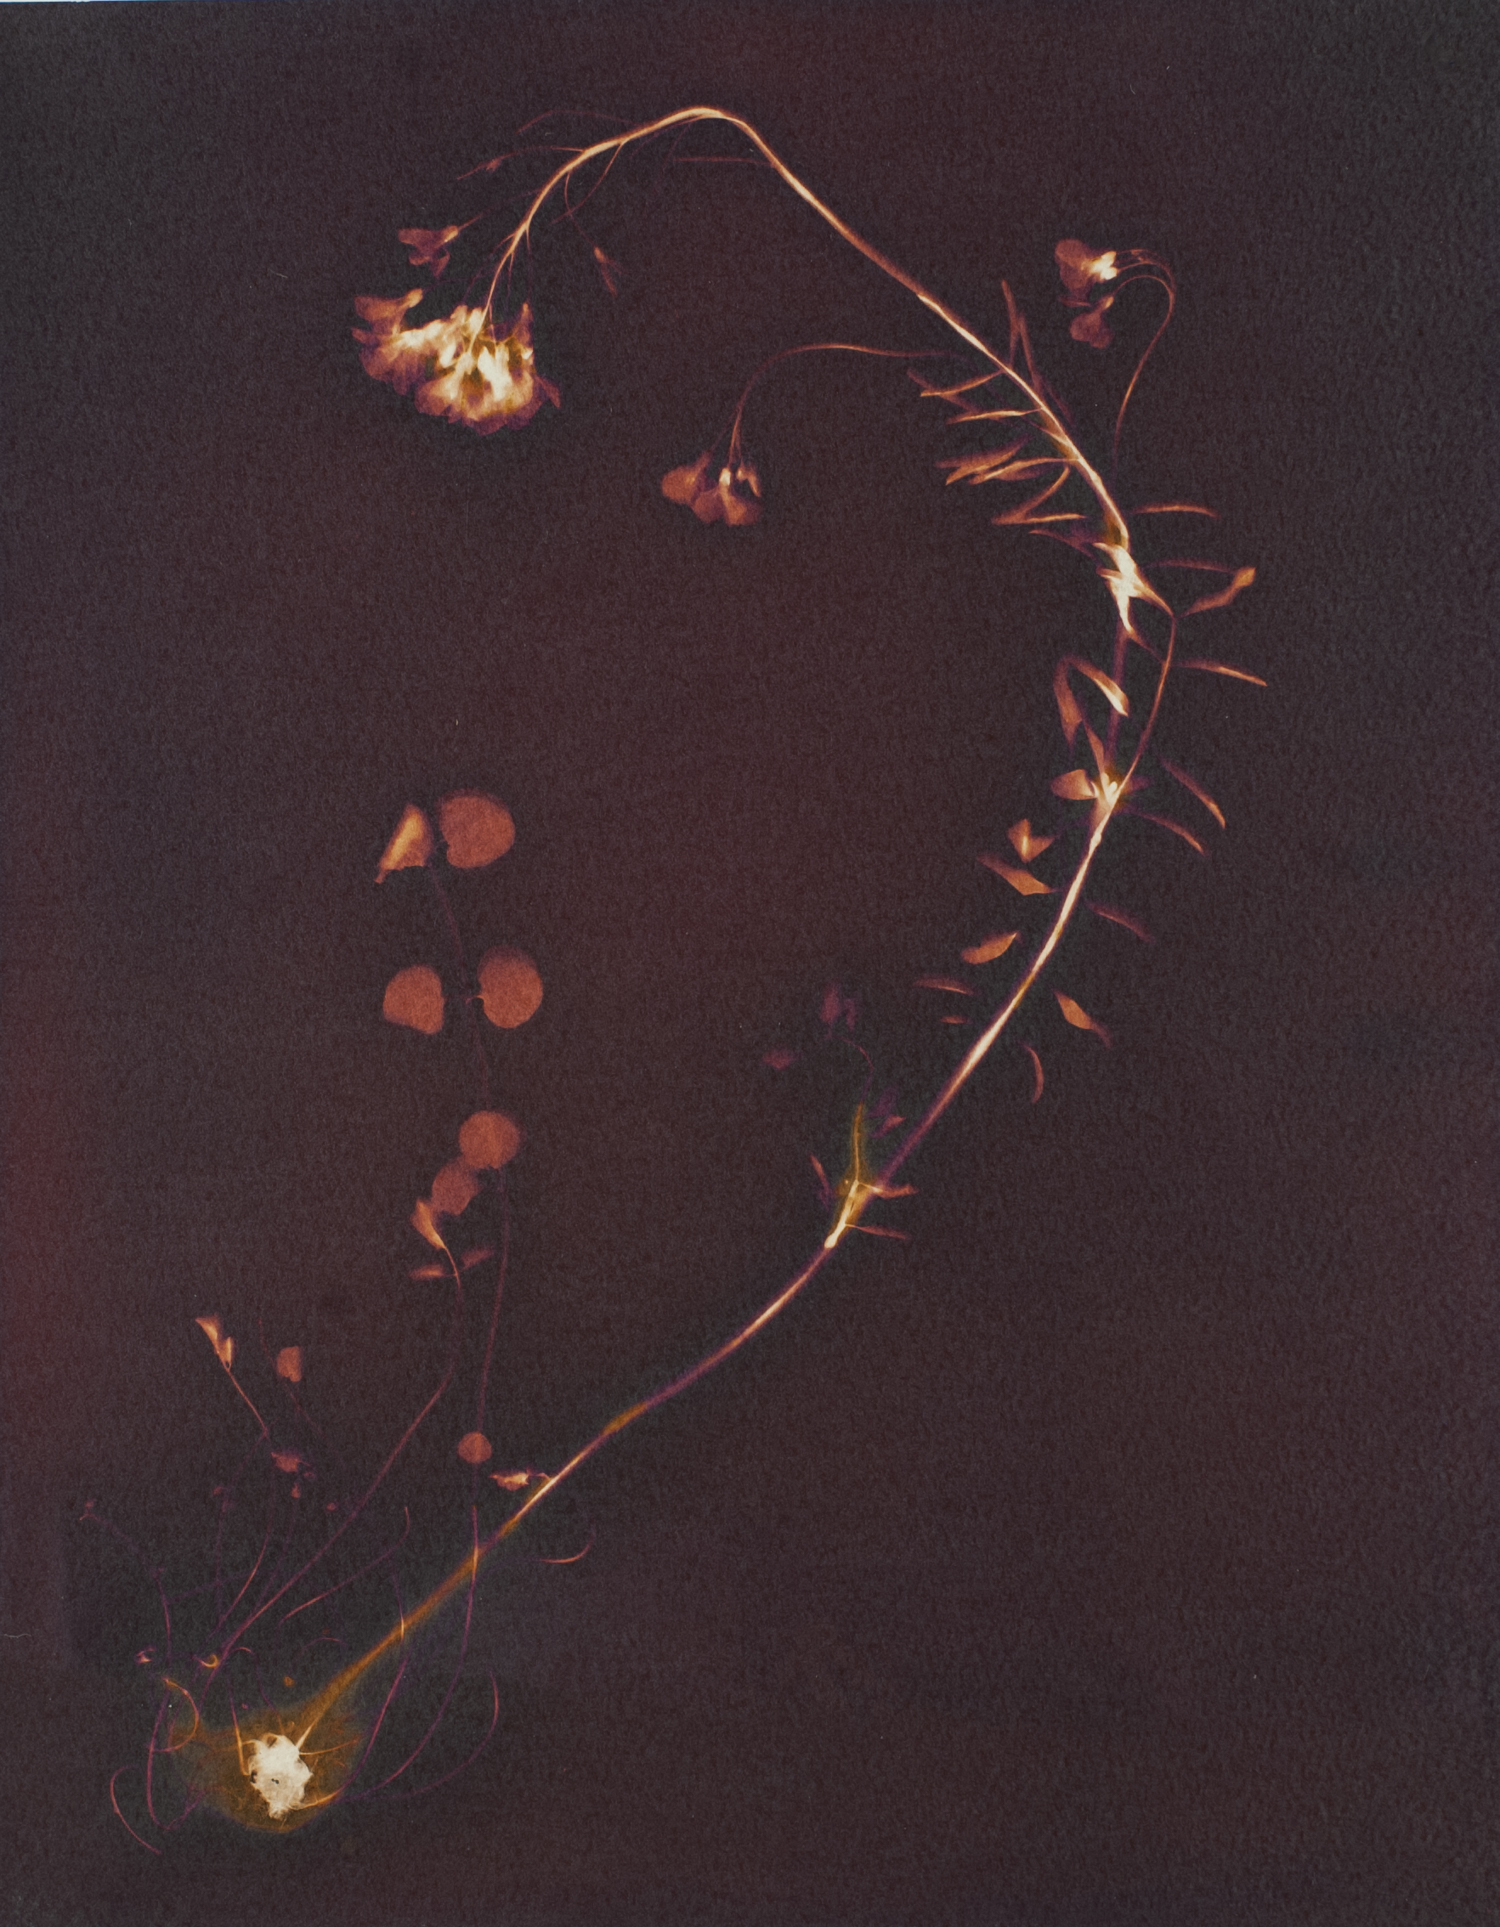 A purple orange and yellow hued lumen print of a wildflower, showing the full plant including roots.